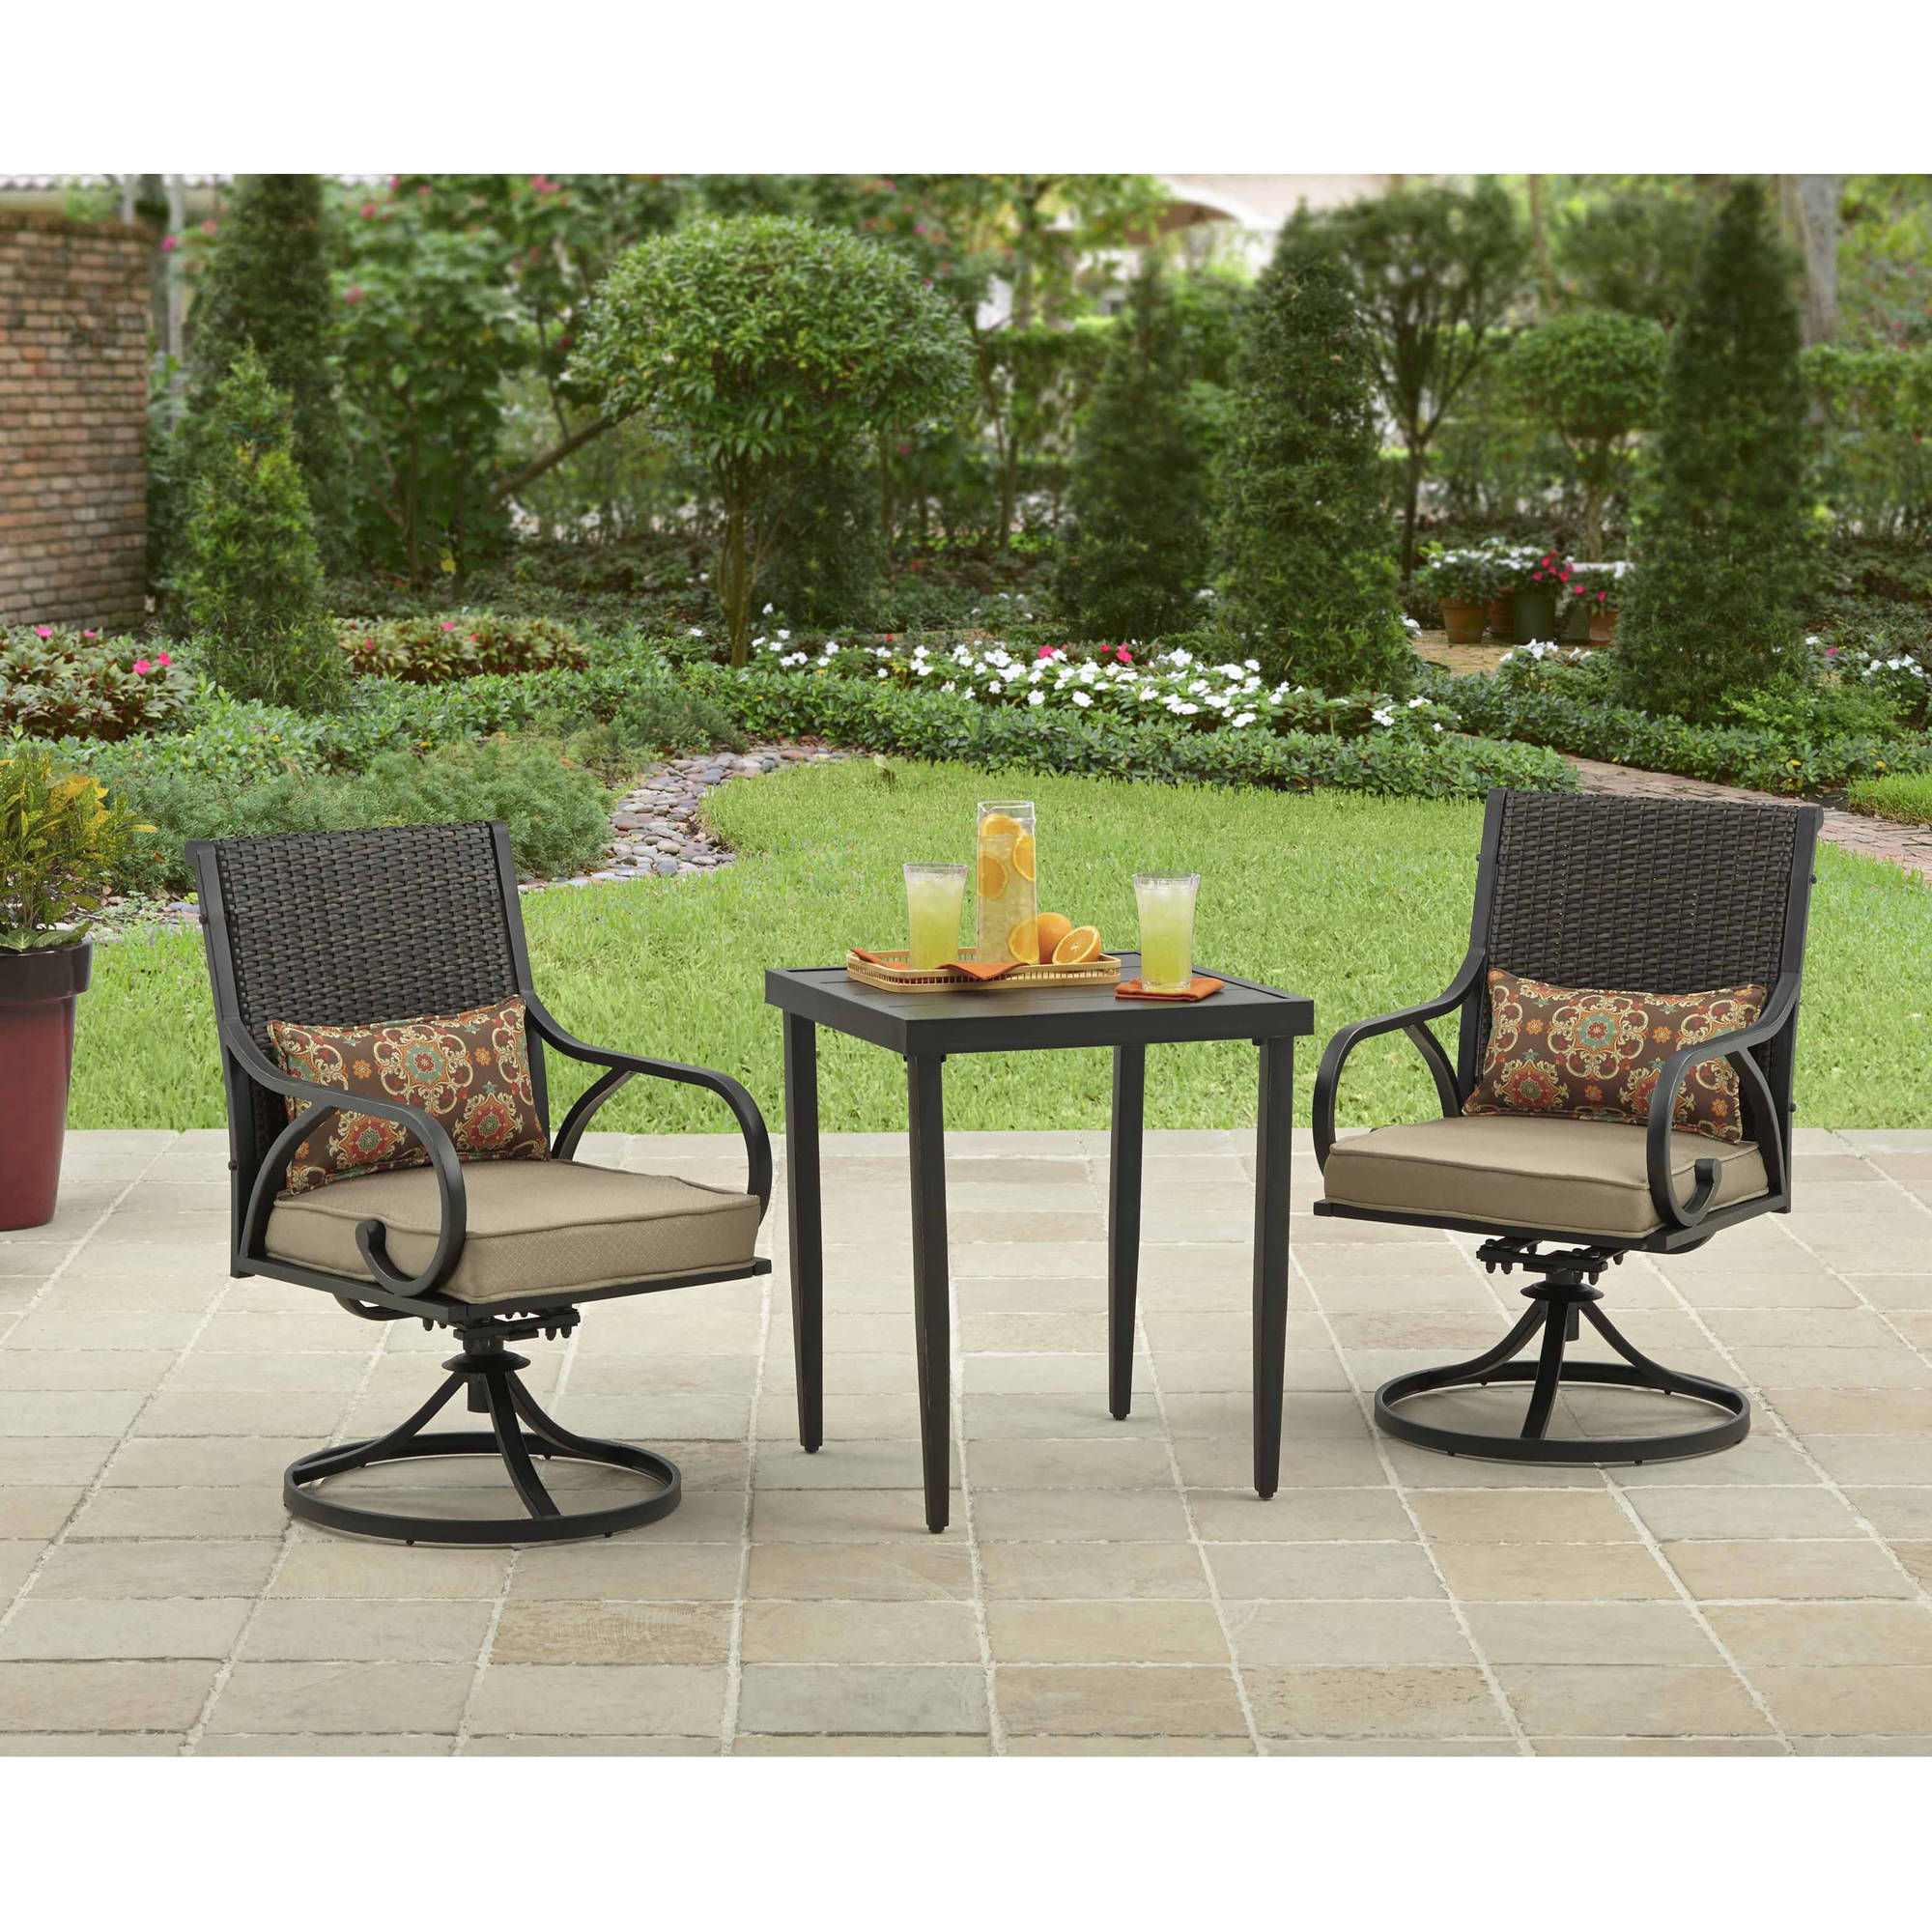 better homes and gardens 3 piece layton ridge bistro set walmartcom - Garden Furniture 3 Piece